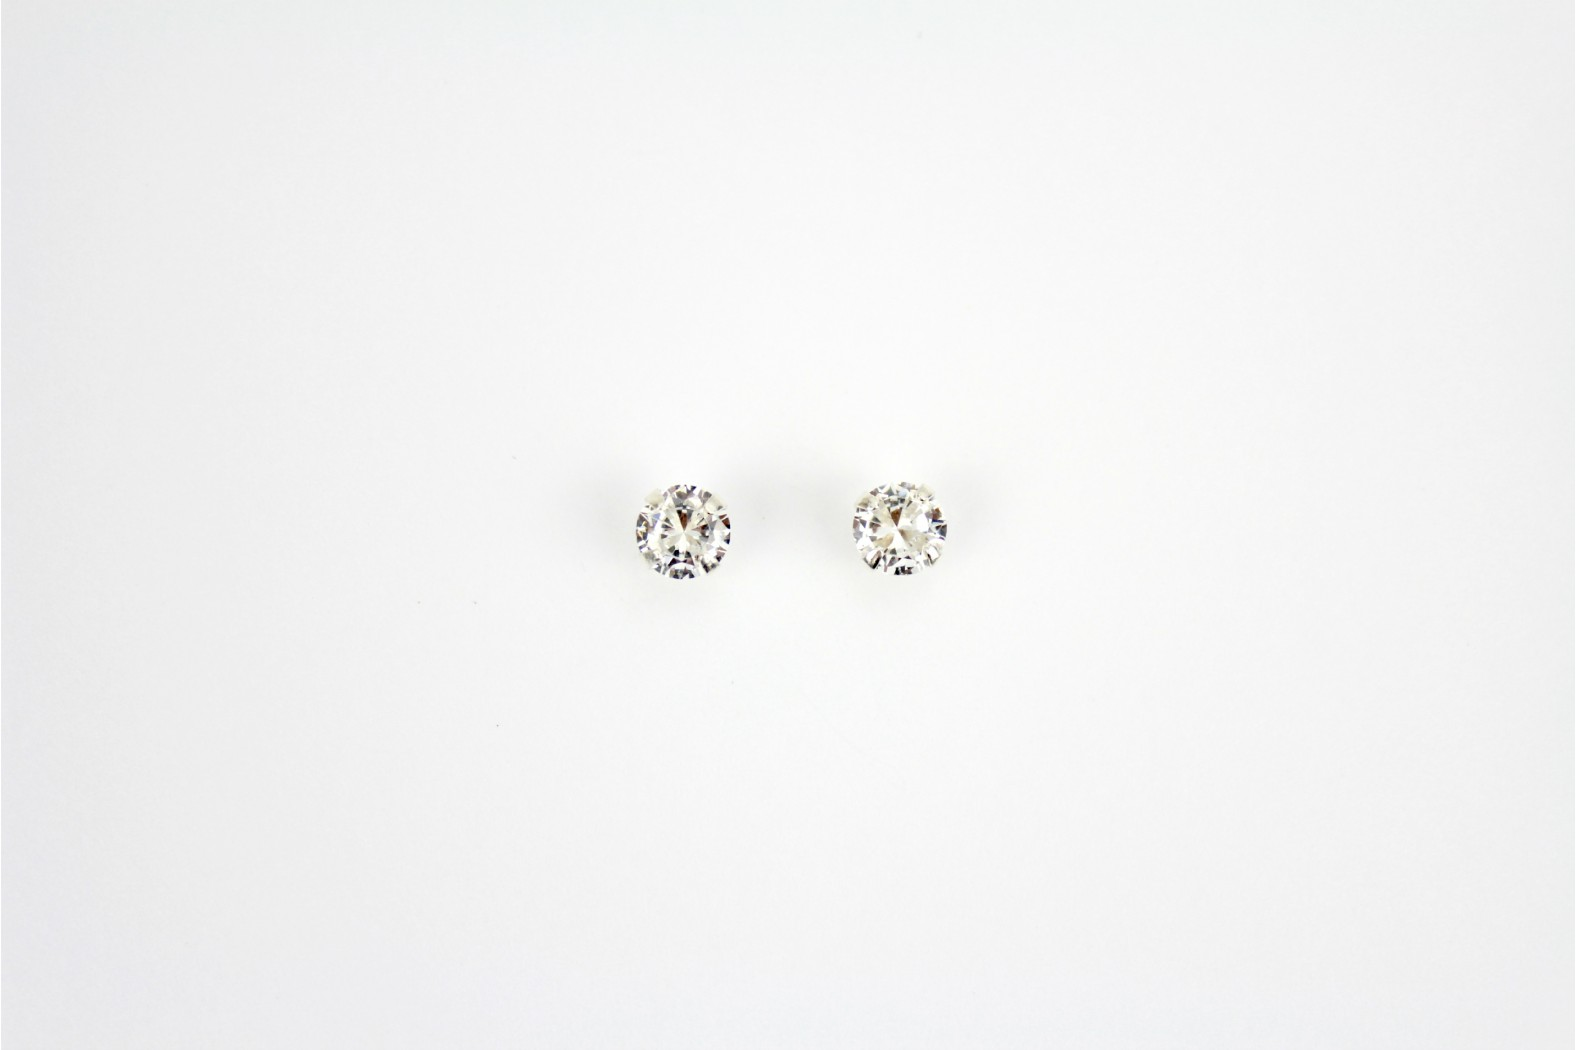 Austrian Crystal claw set stud earrings faceted shaped Large